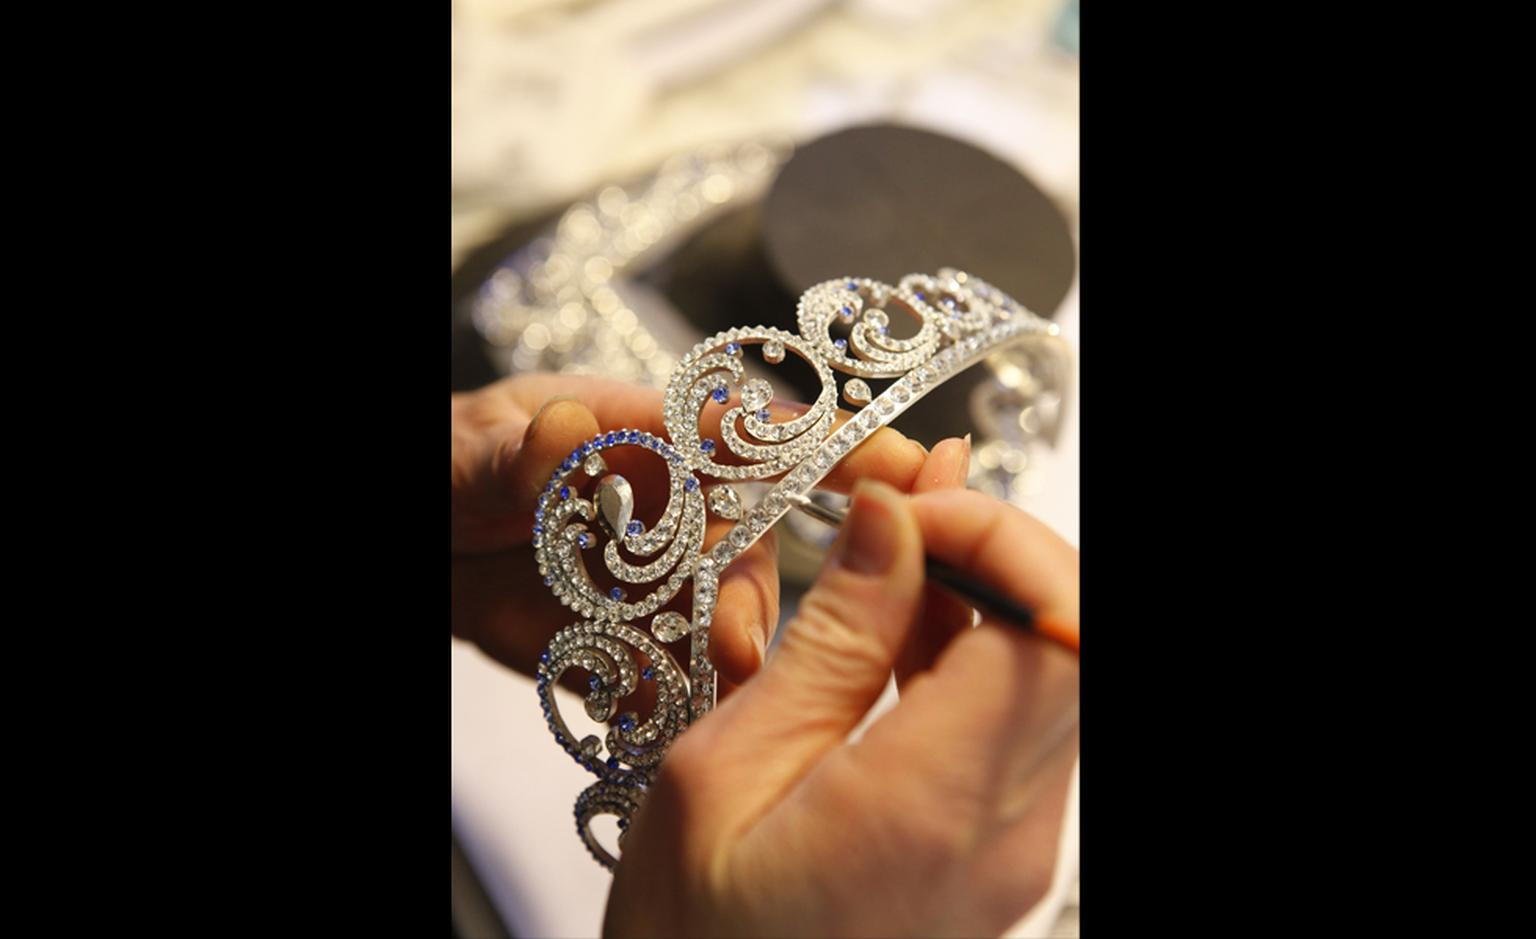 Van Cleef & Arpels: Ocean necklace tiara. Construction of the mock up and work on the positioning of the stones.